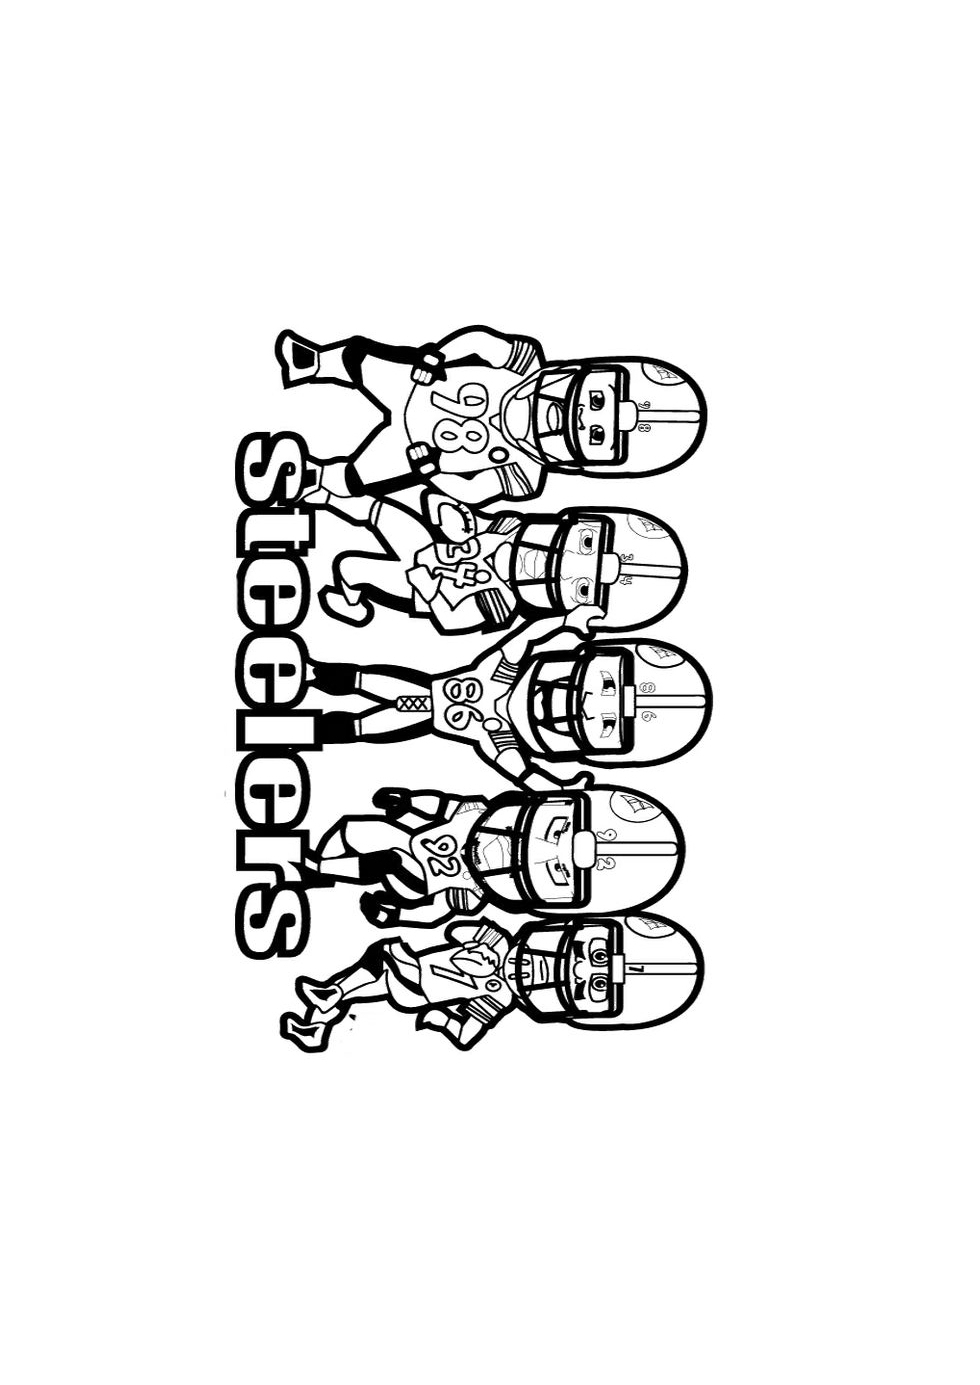 steelers free coloring pages - photo#26